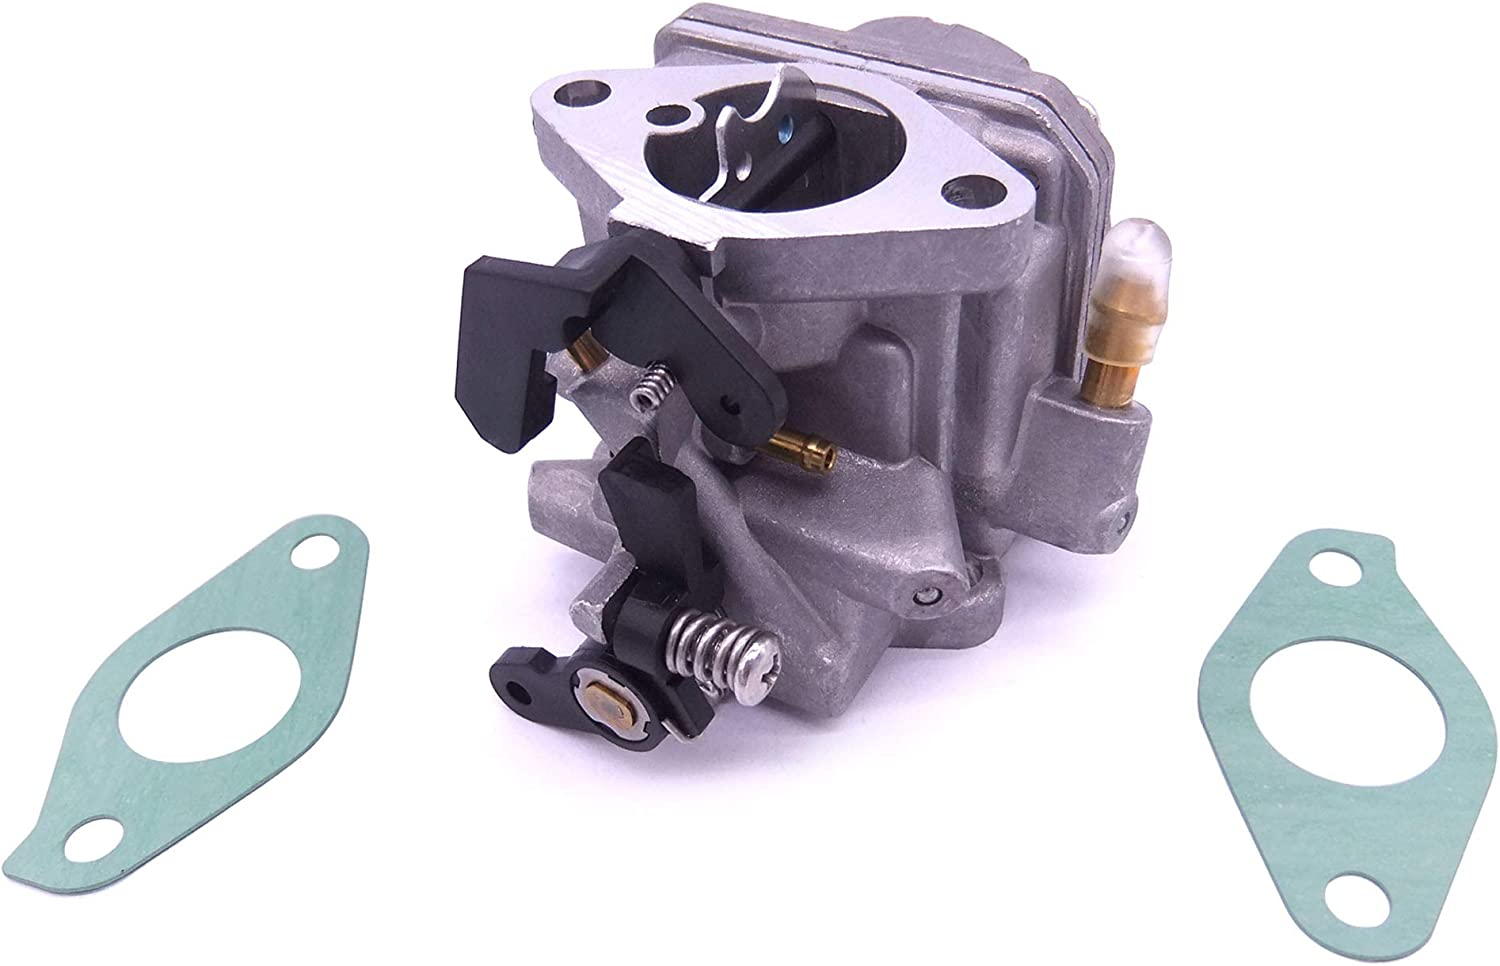 Boat Engine 3303-803522T1 803522T2 803522T03 803522A04 803522A05 803522T04-T06 Carburetor Assy and 27-803508013 Carburetor Gasket for Mercury Mariner 4-Stroke 4HP 5HP Outboard Motor